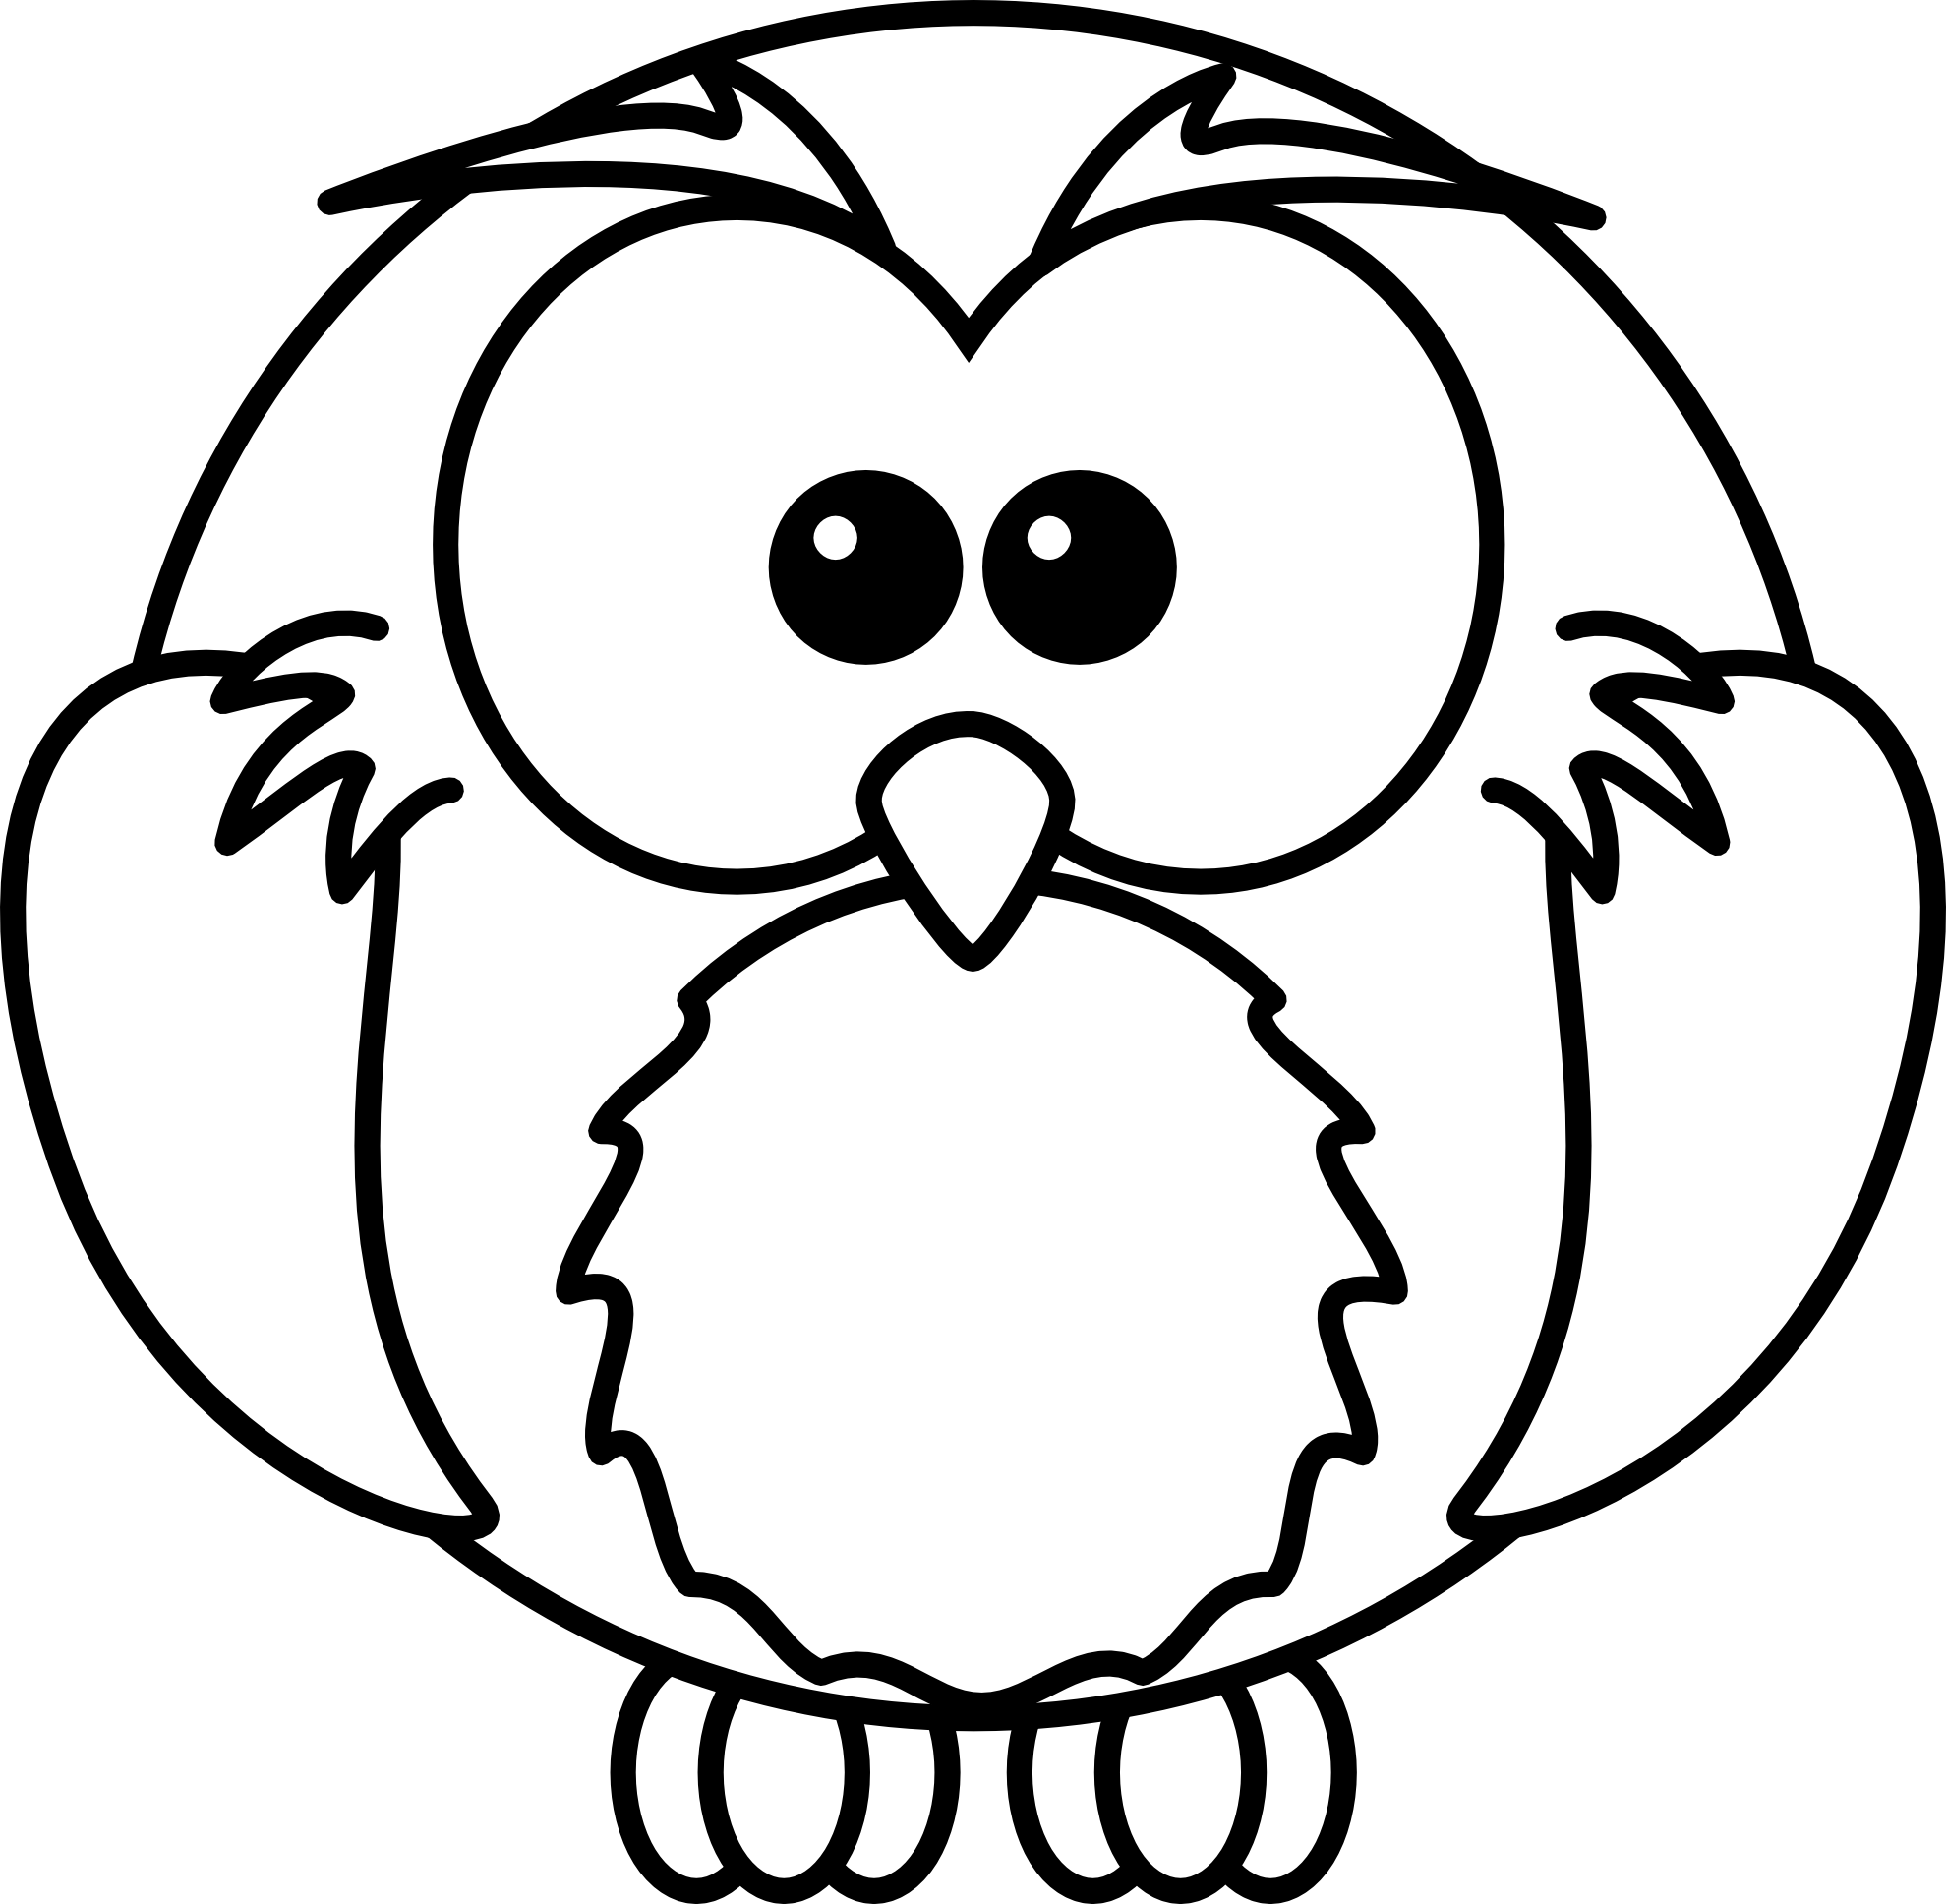 Black and white bird. Watermelon clipart line drawing